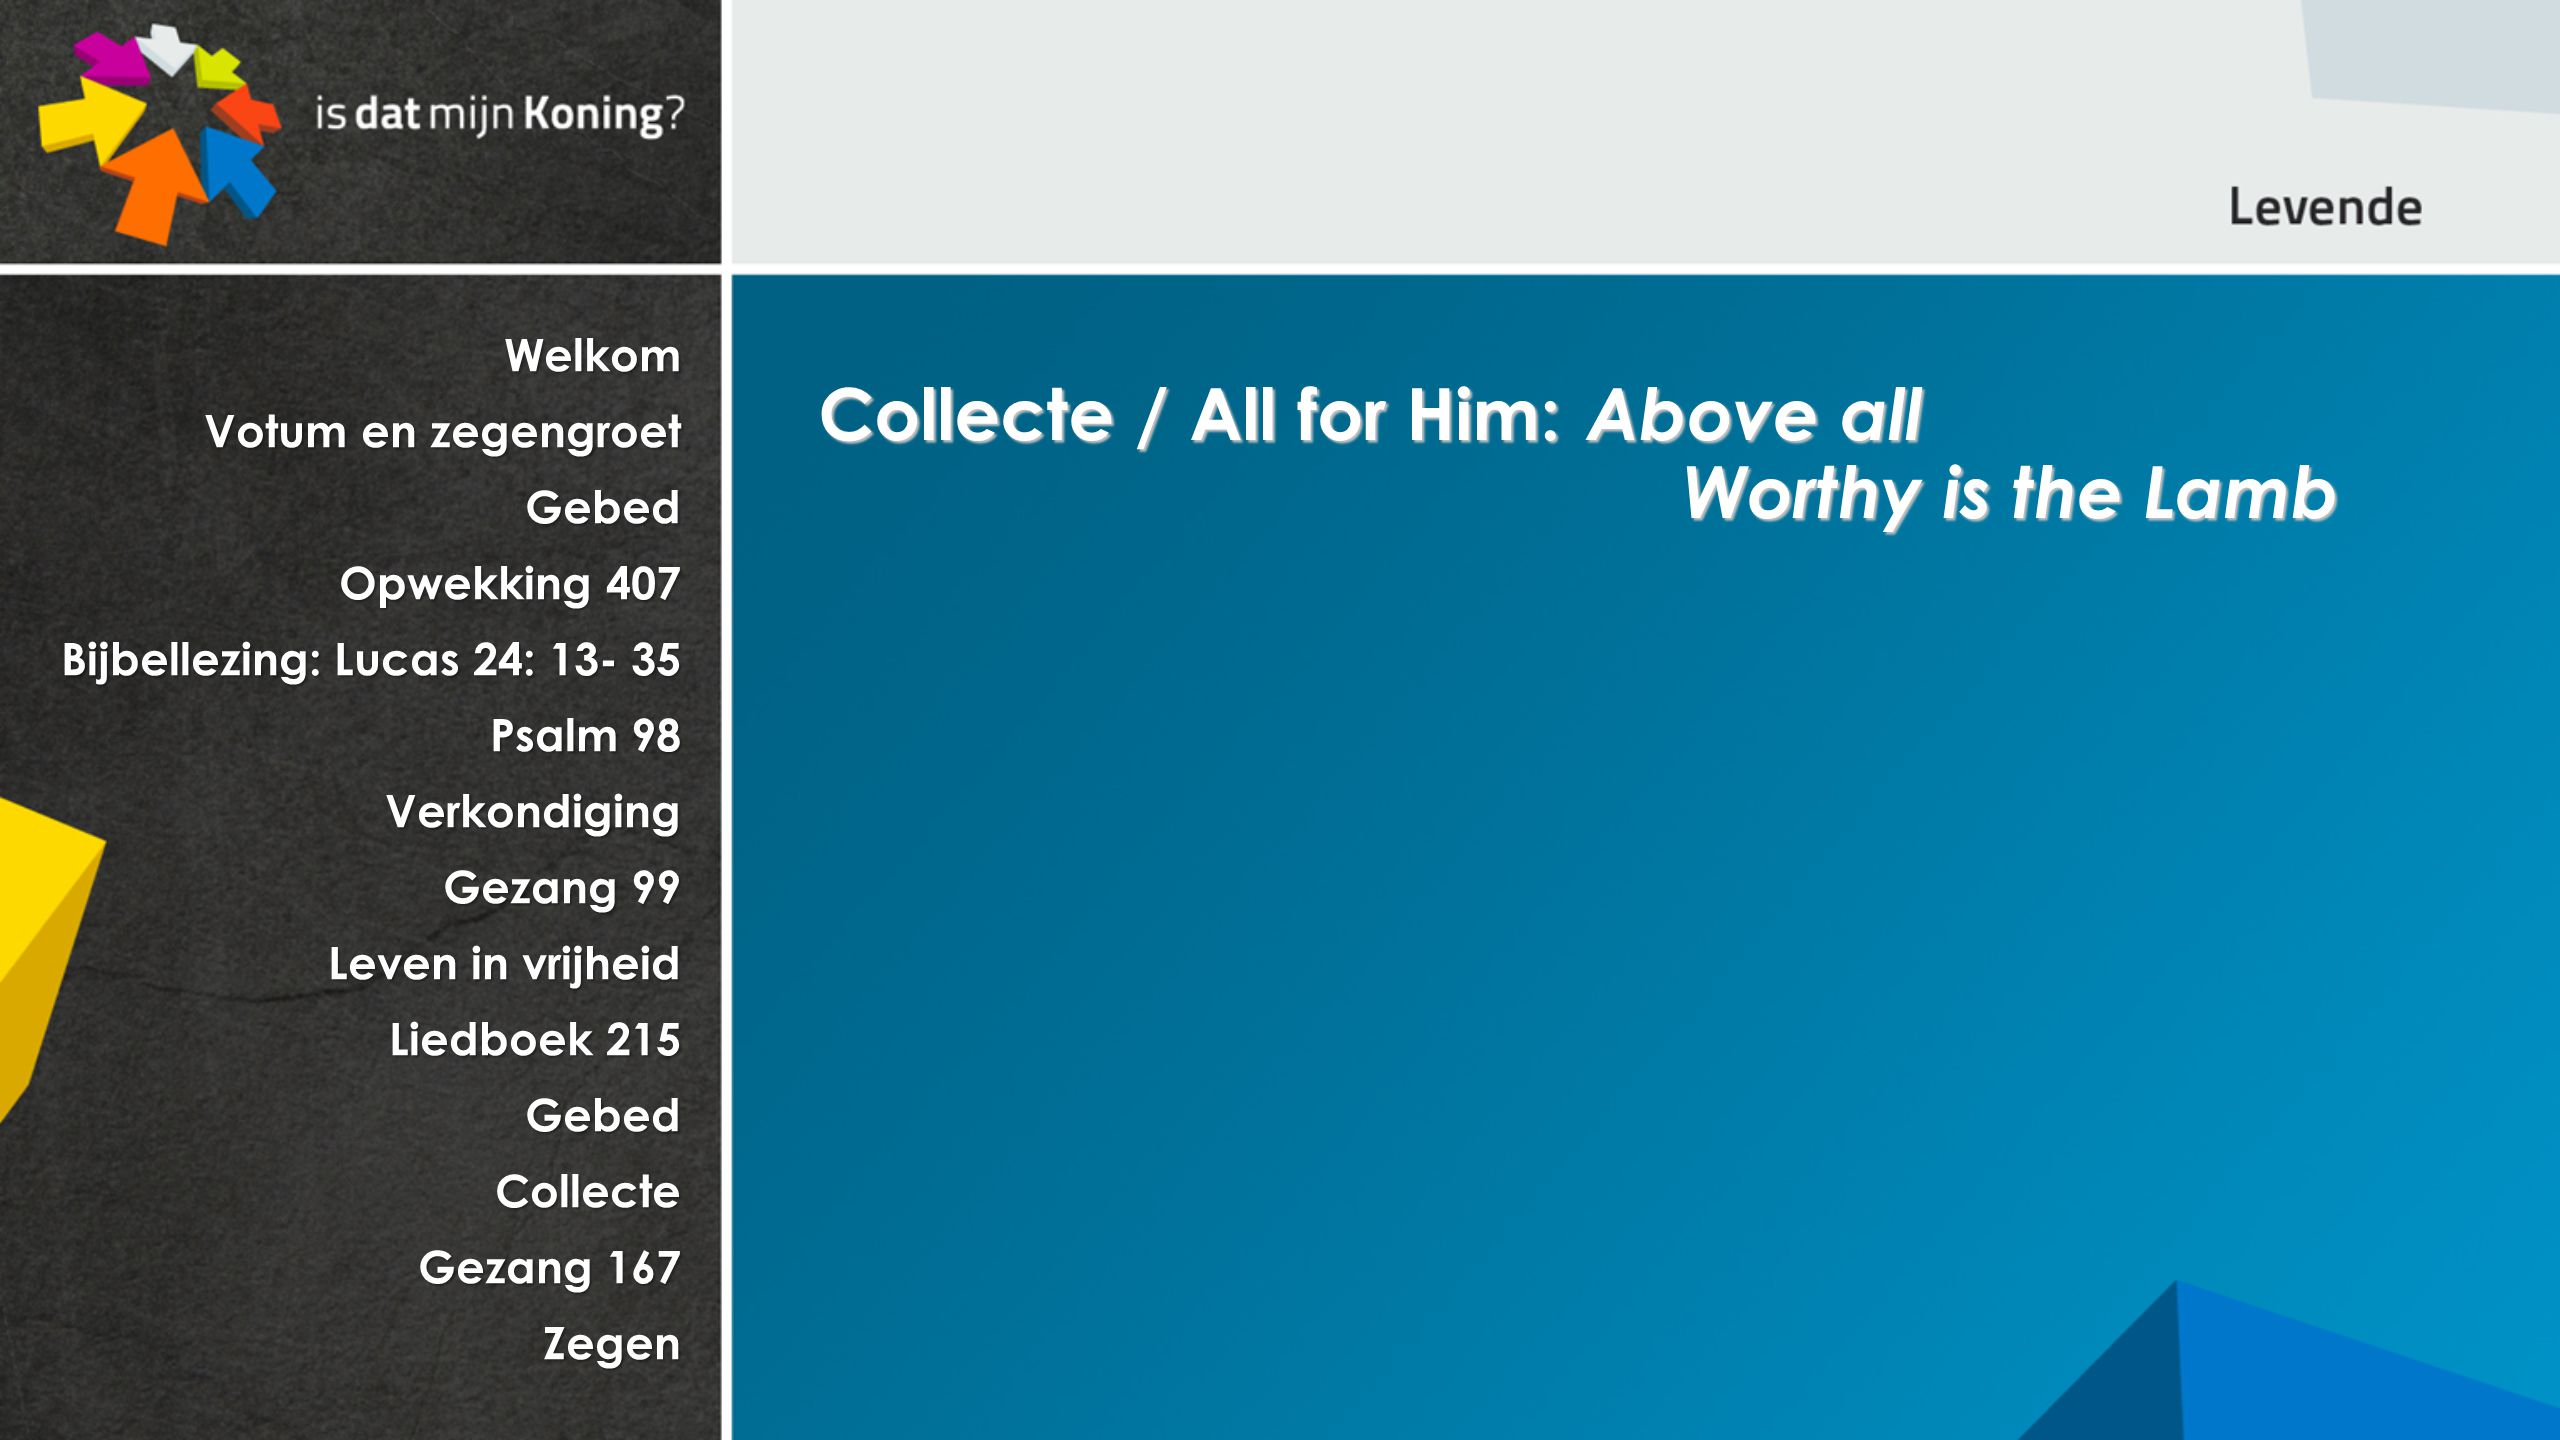 Collecte / All for Him: Above all Worthy is the Lamb